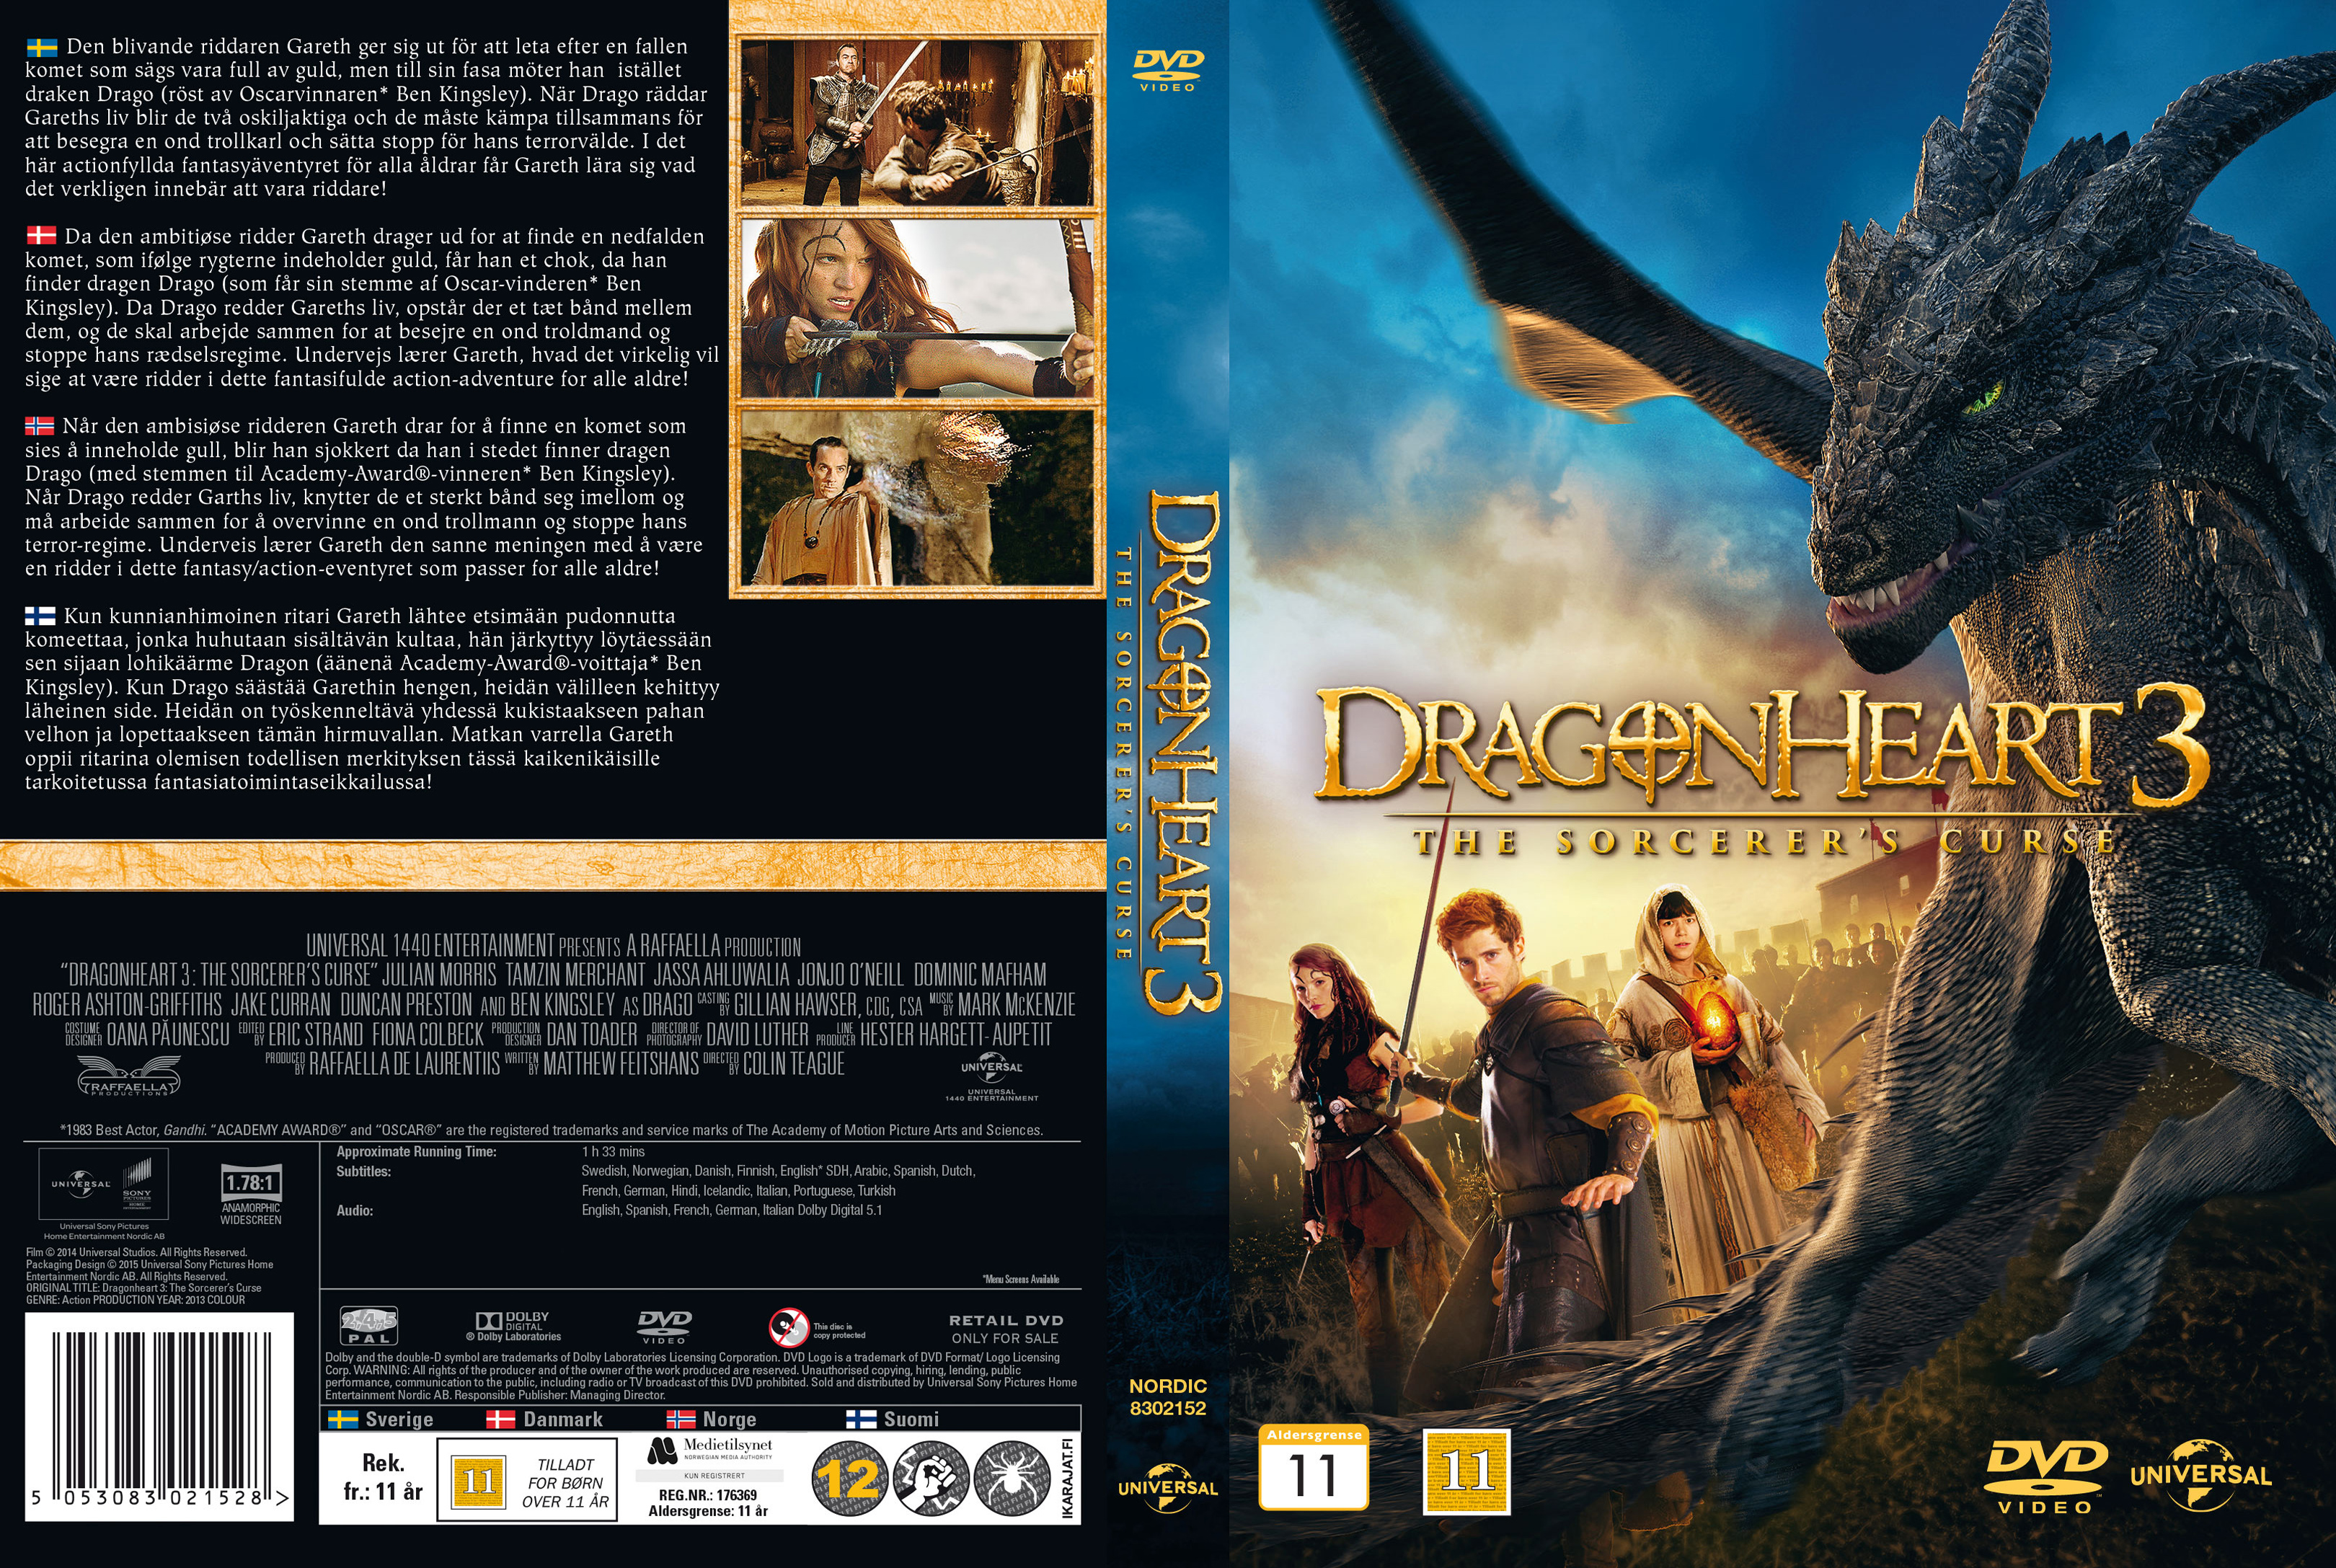 Dragonheart 3 (cover)